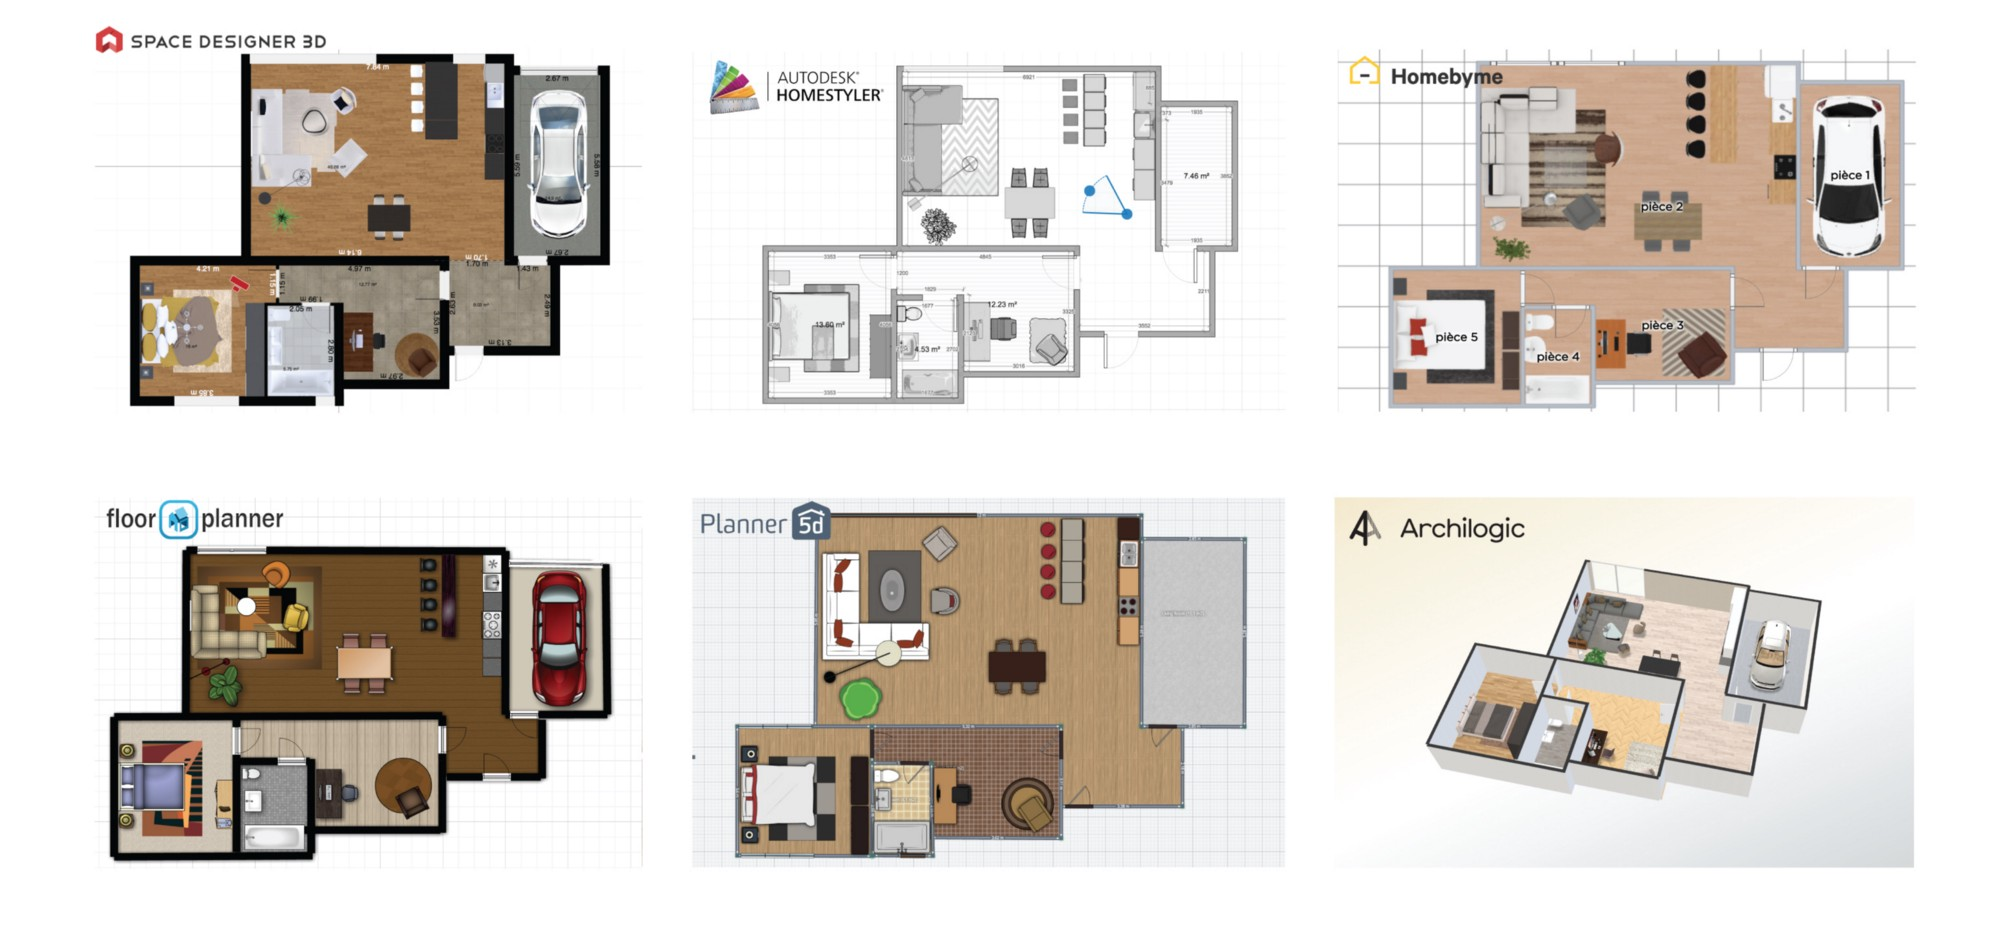 Space designer 3d vs giants of floor planning space 3d floor plan software